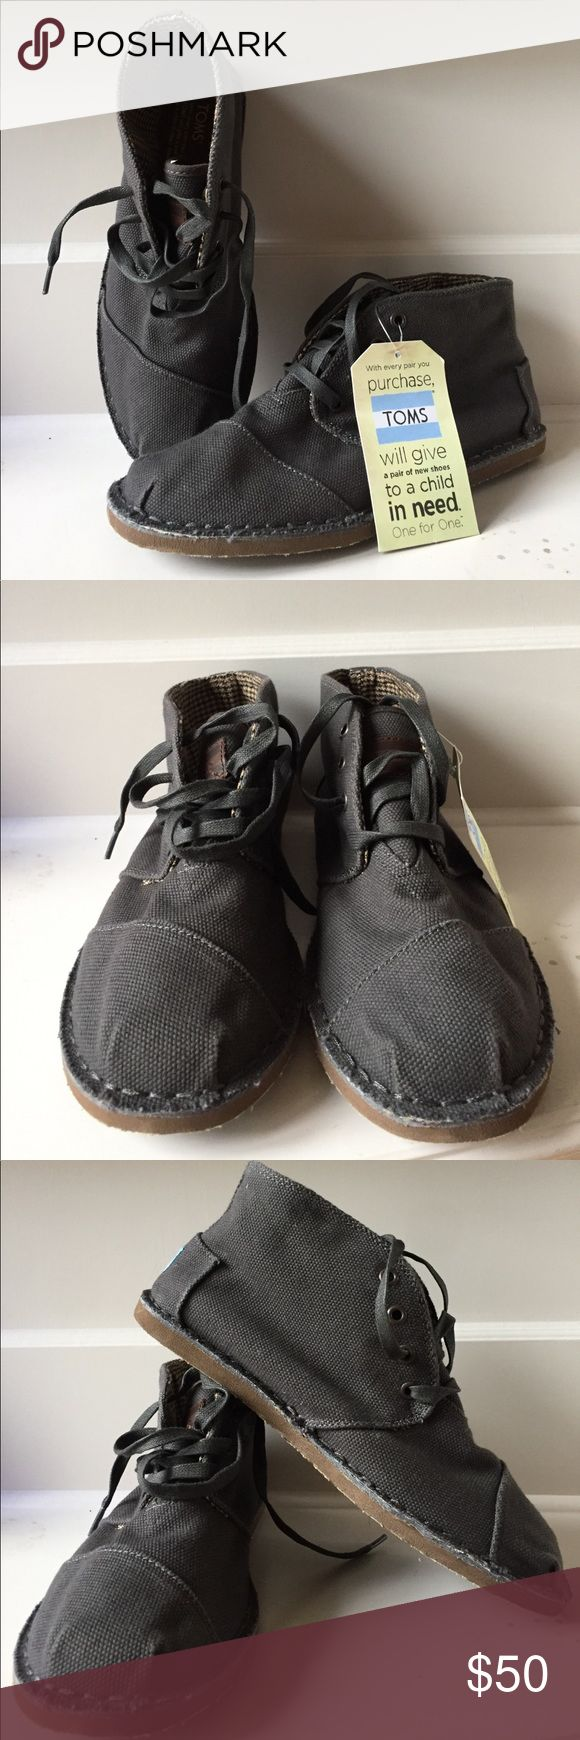 NWT Men's Tom's Charcoal Canvas Desert Botas 8 Brand-new without box Men's Tom's Charcoal Canvas Desert Botas in a size 8.  Great looking mens shoe that has a rubber sole and a canvas upper and laces up.  I don't miss from a pet and smoke free home. C41 Toms Shoes